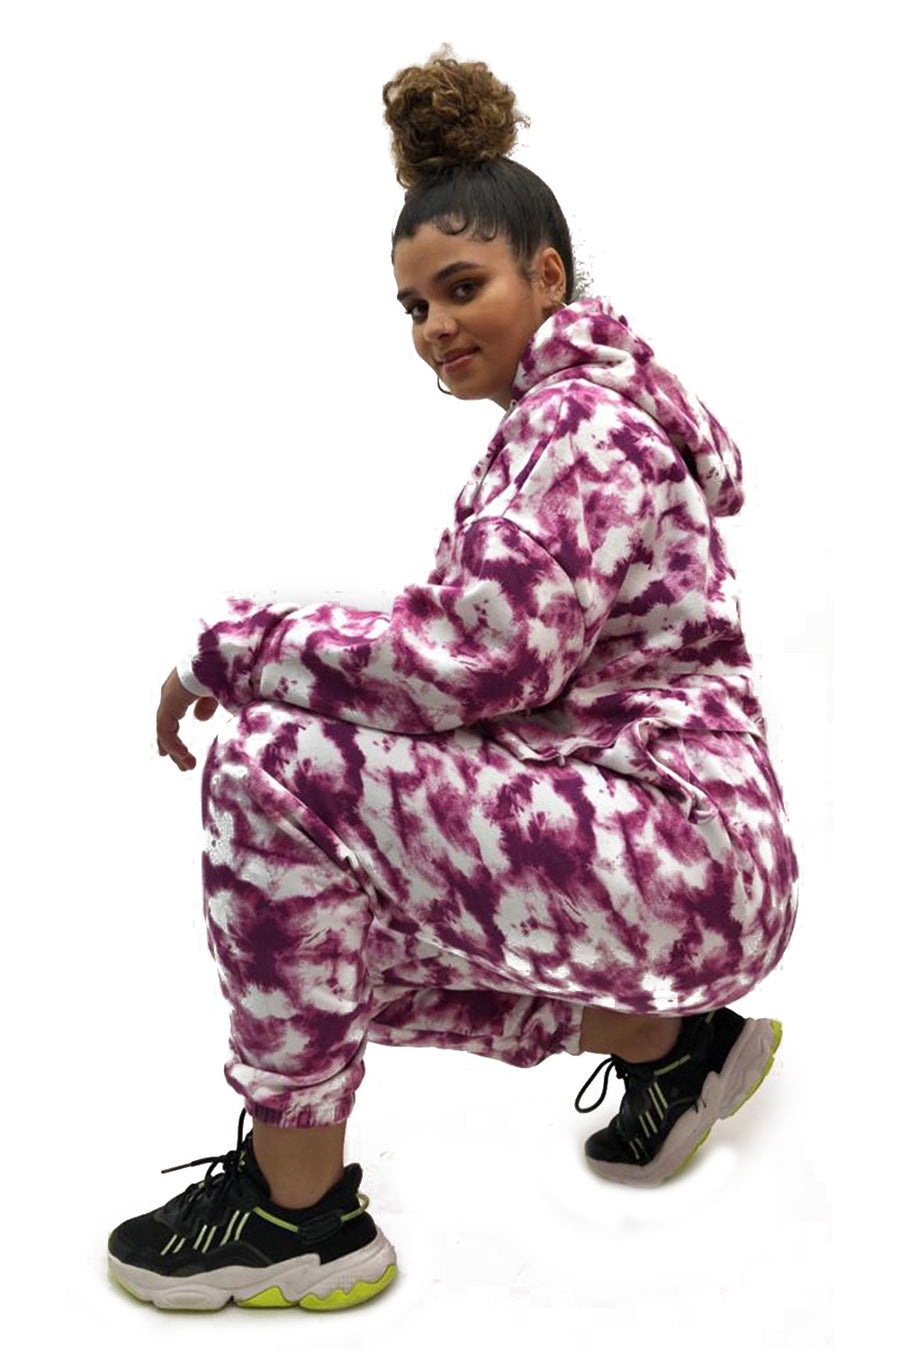 Pink Tie Dye Hooded Jersey Loungwear Suit - Nova